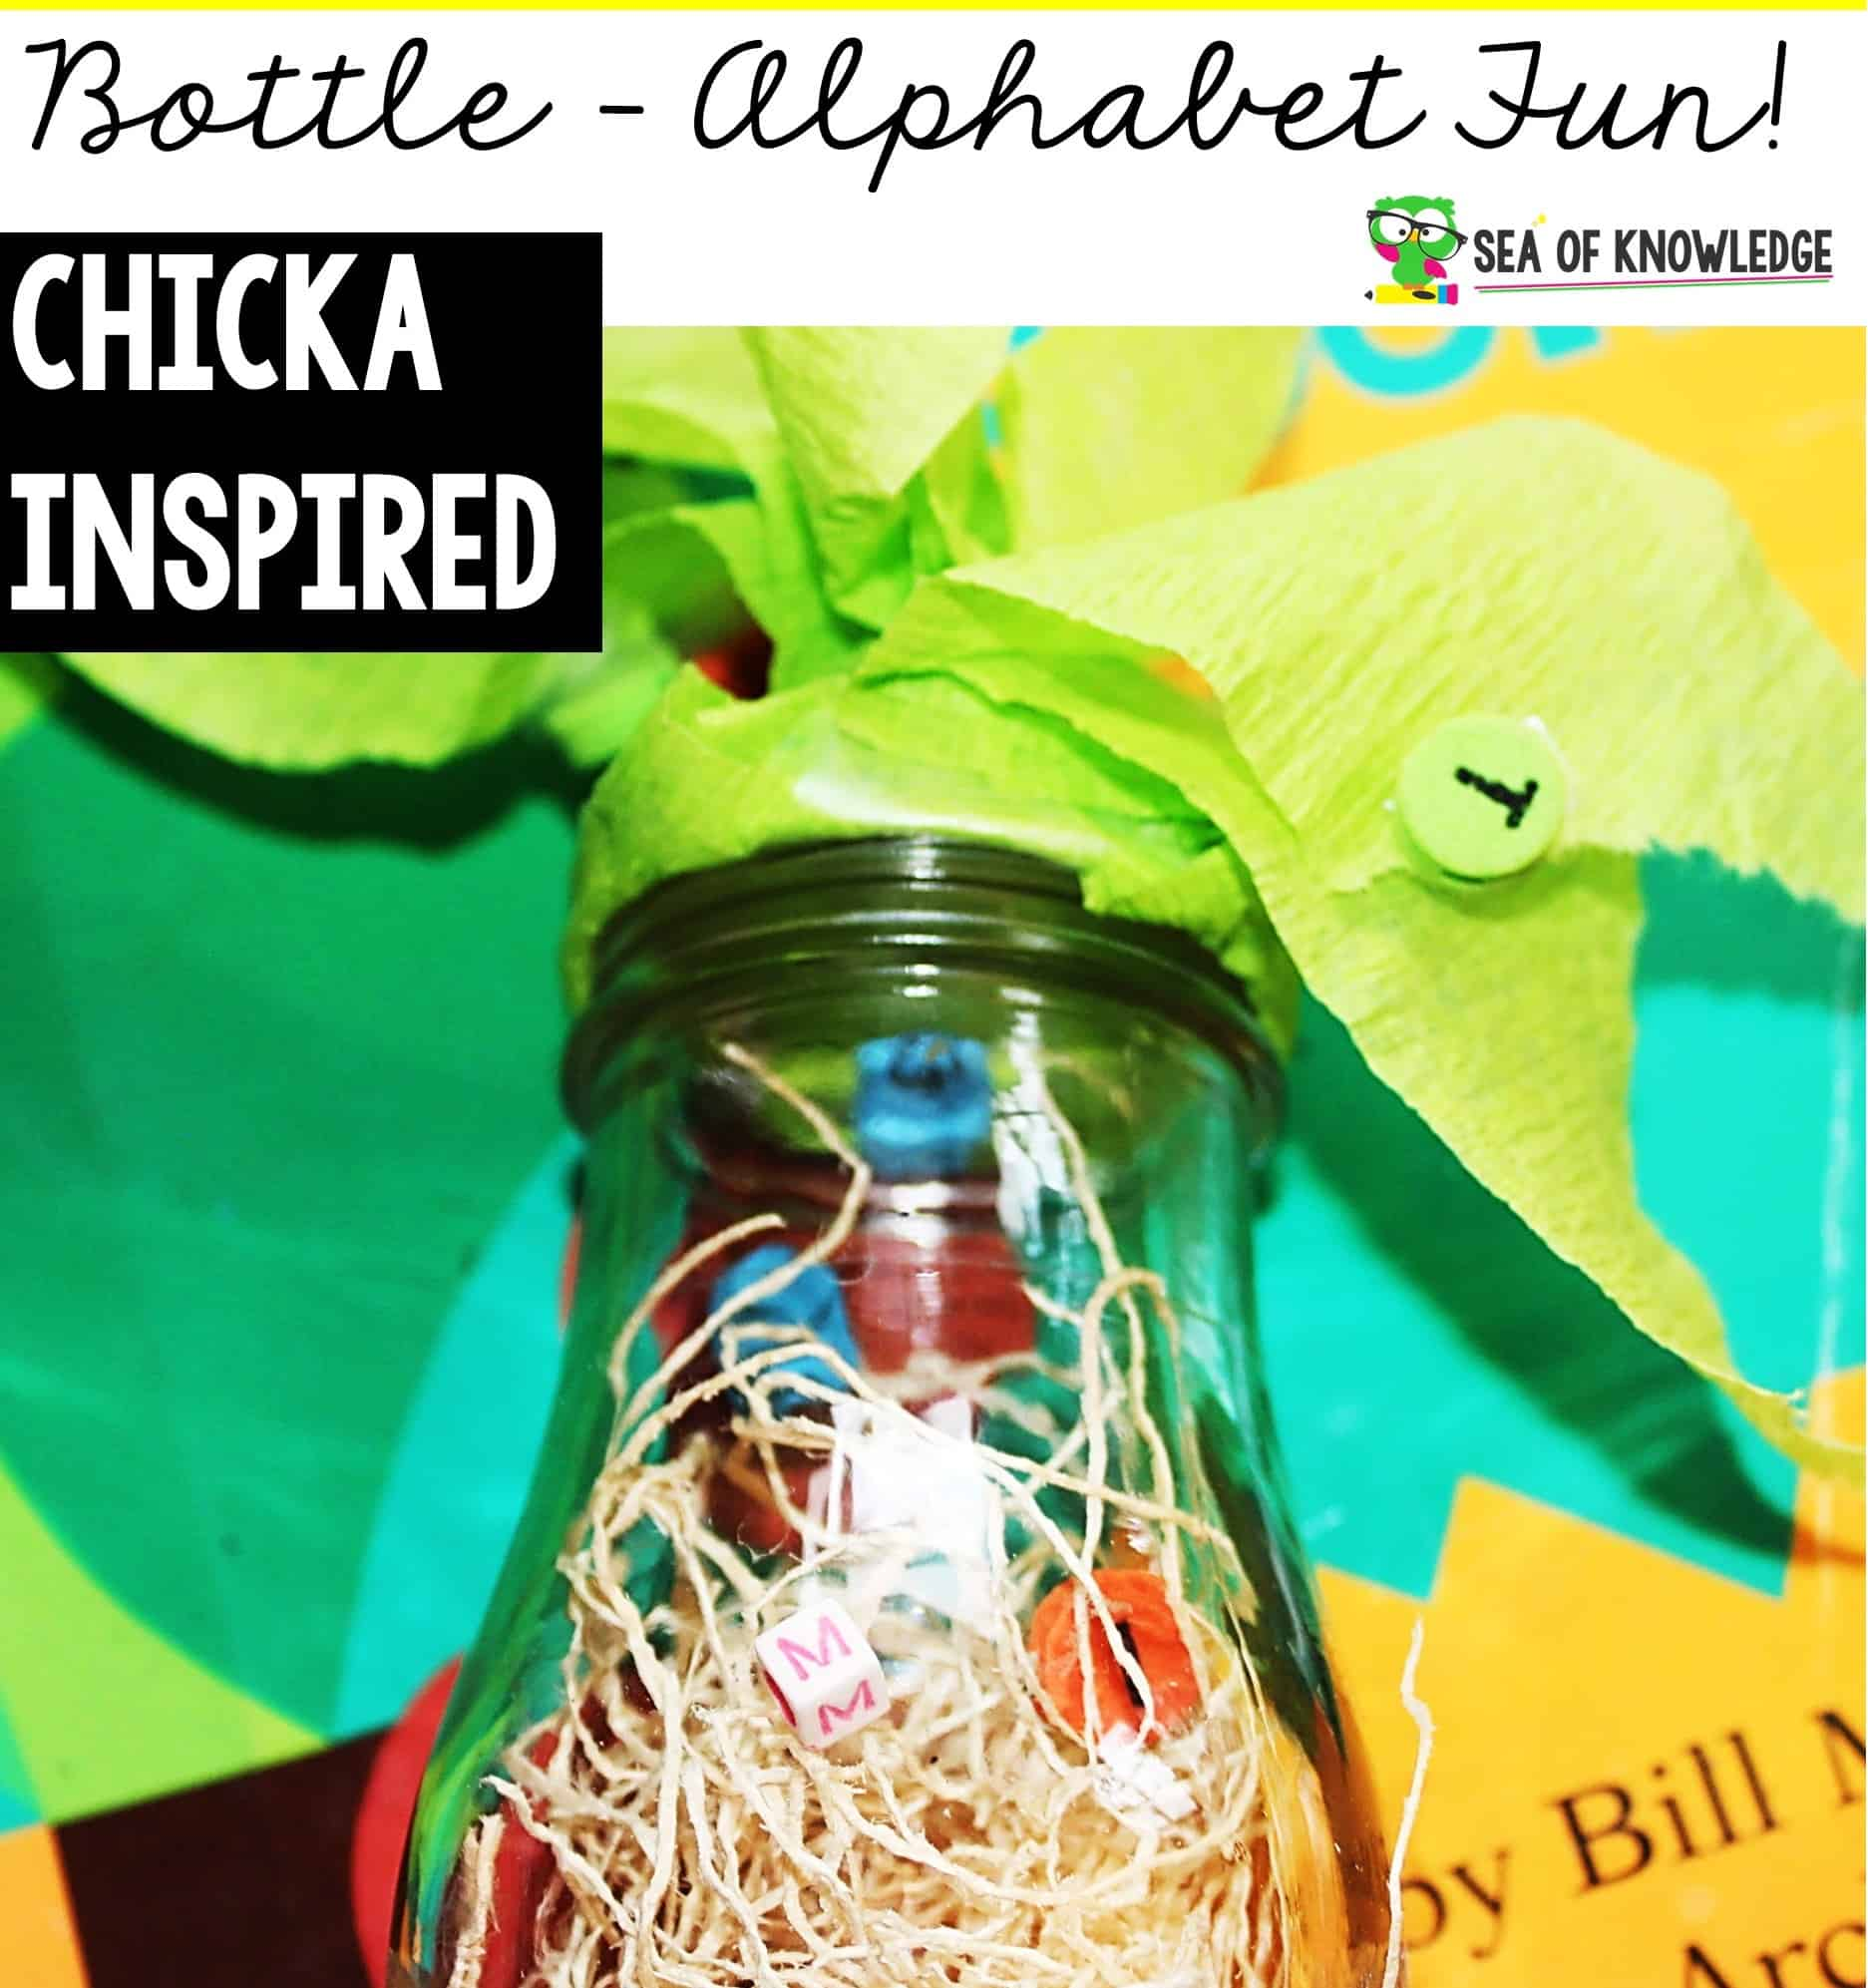 Looking for a super simple and easy Chicka Chicka DIY Alphabet Sensory Bottle that would go so easily with the super popular book Chicka Chicka Boom Boom? Kids LOVE this book, capitalise on this by providing even more fun activities to go along the book after reading it!